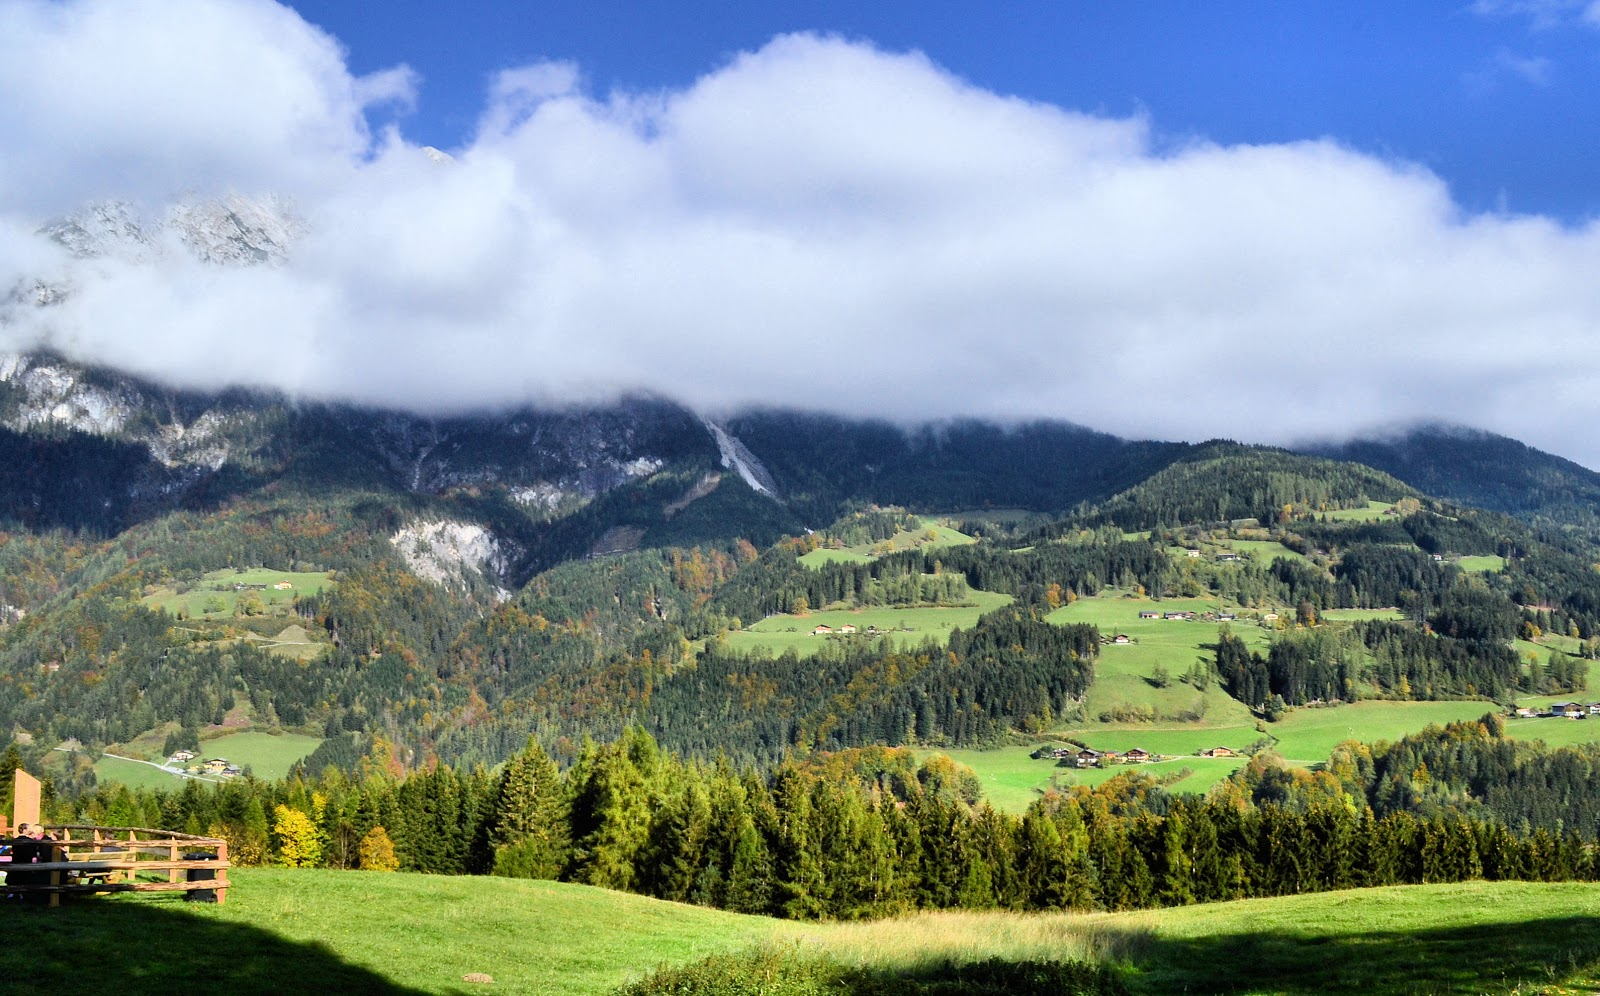 Alpine landscapes abound when exploring Europe on foot. Photo: © EuroTravelogue. Unauthorized use is prohibited.